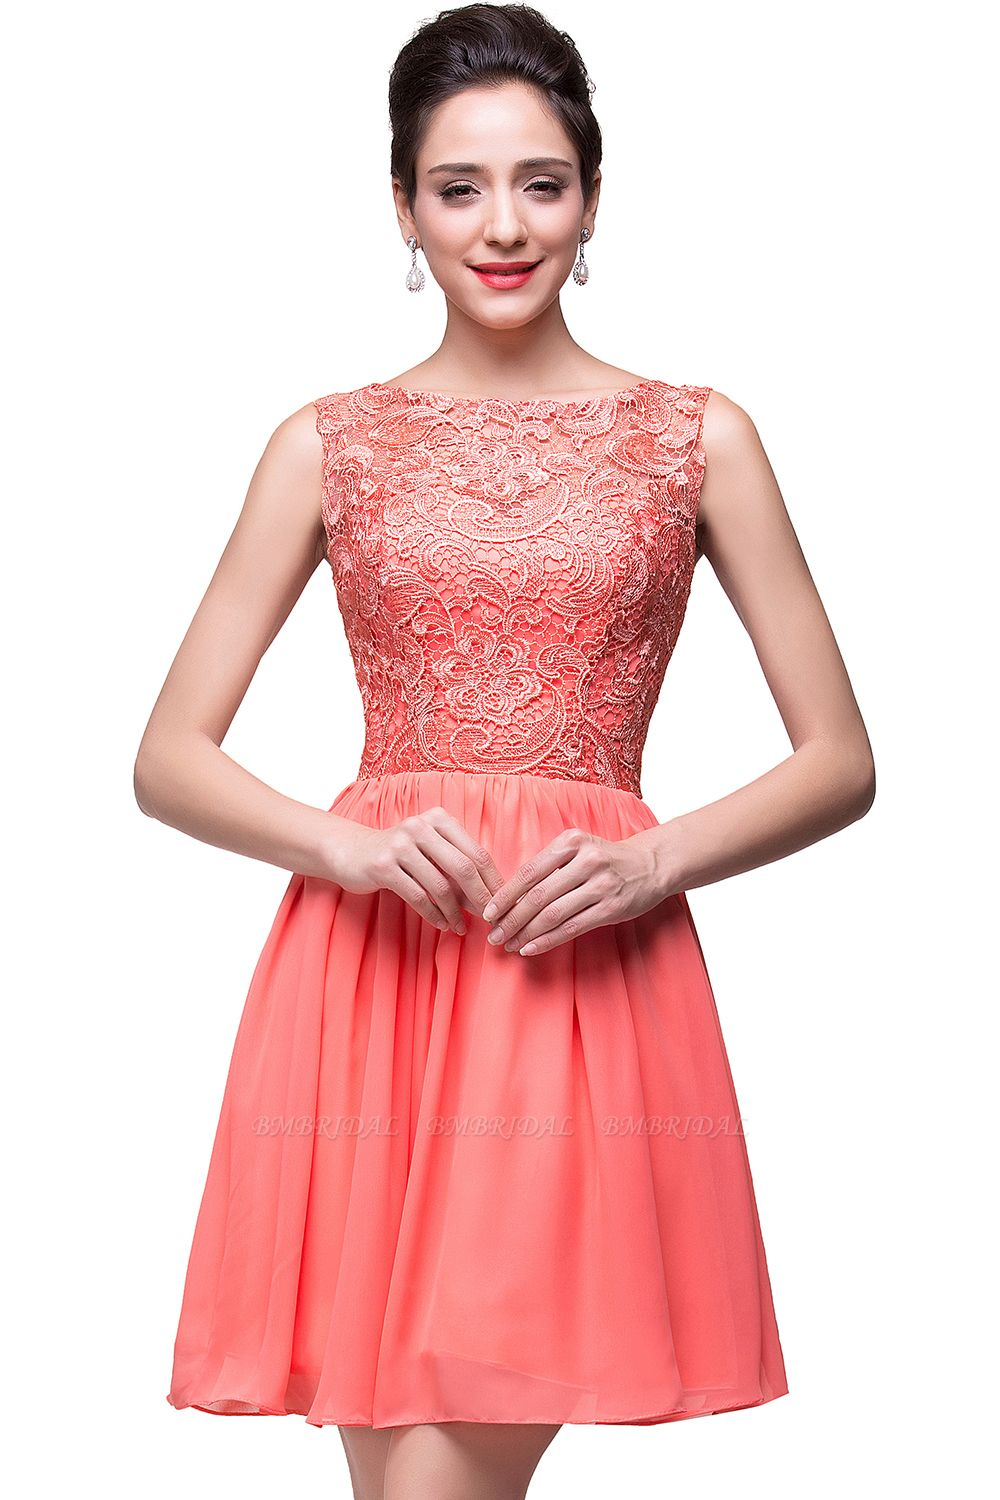 BMbridal Affordable Chiffon Lace Short Bridesmaid Dresses with Ruffle In Stock